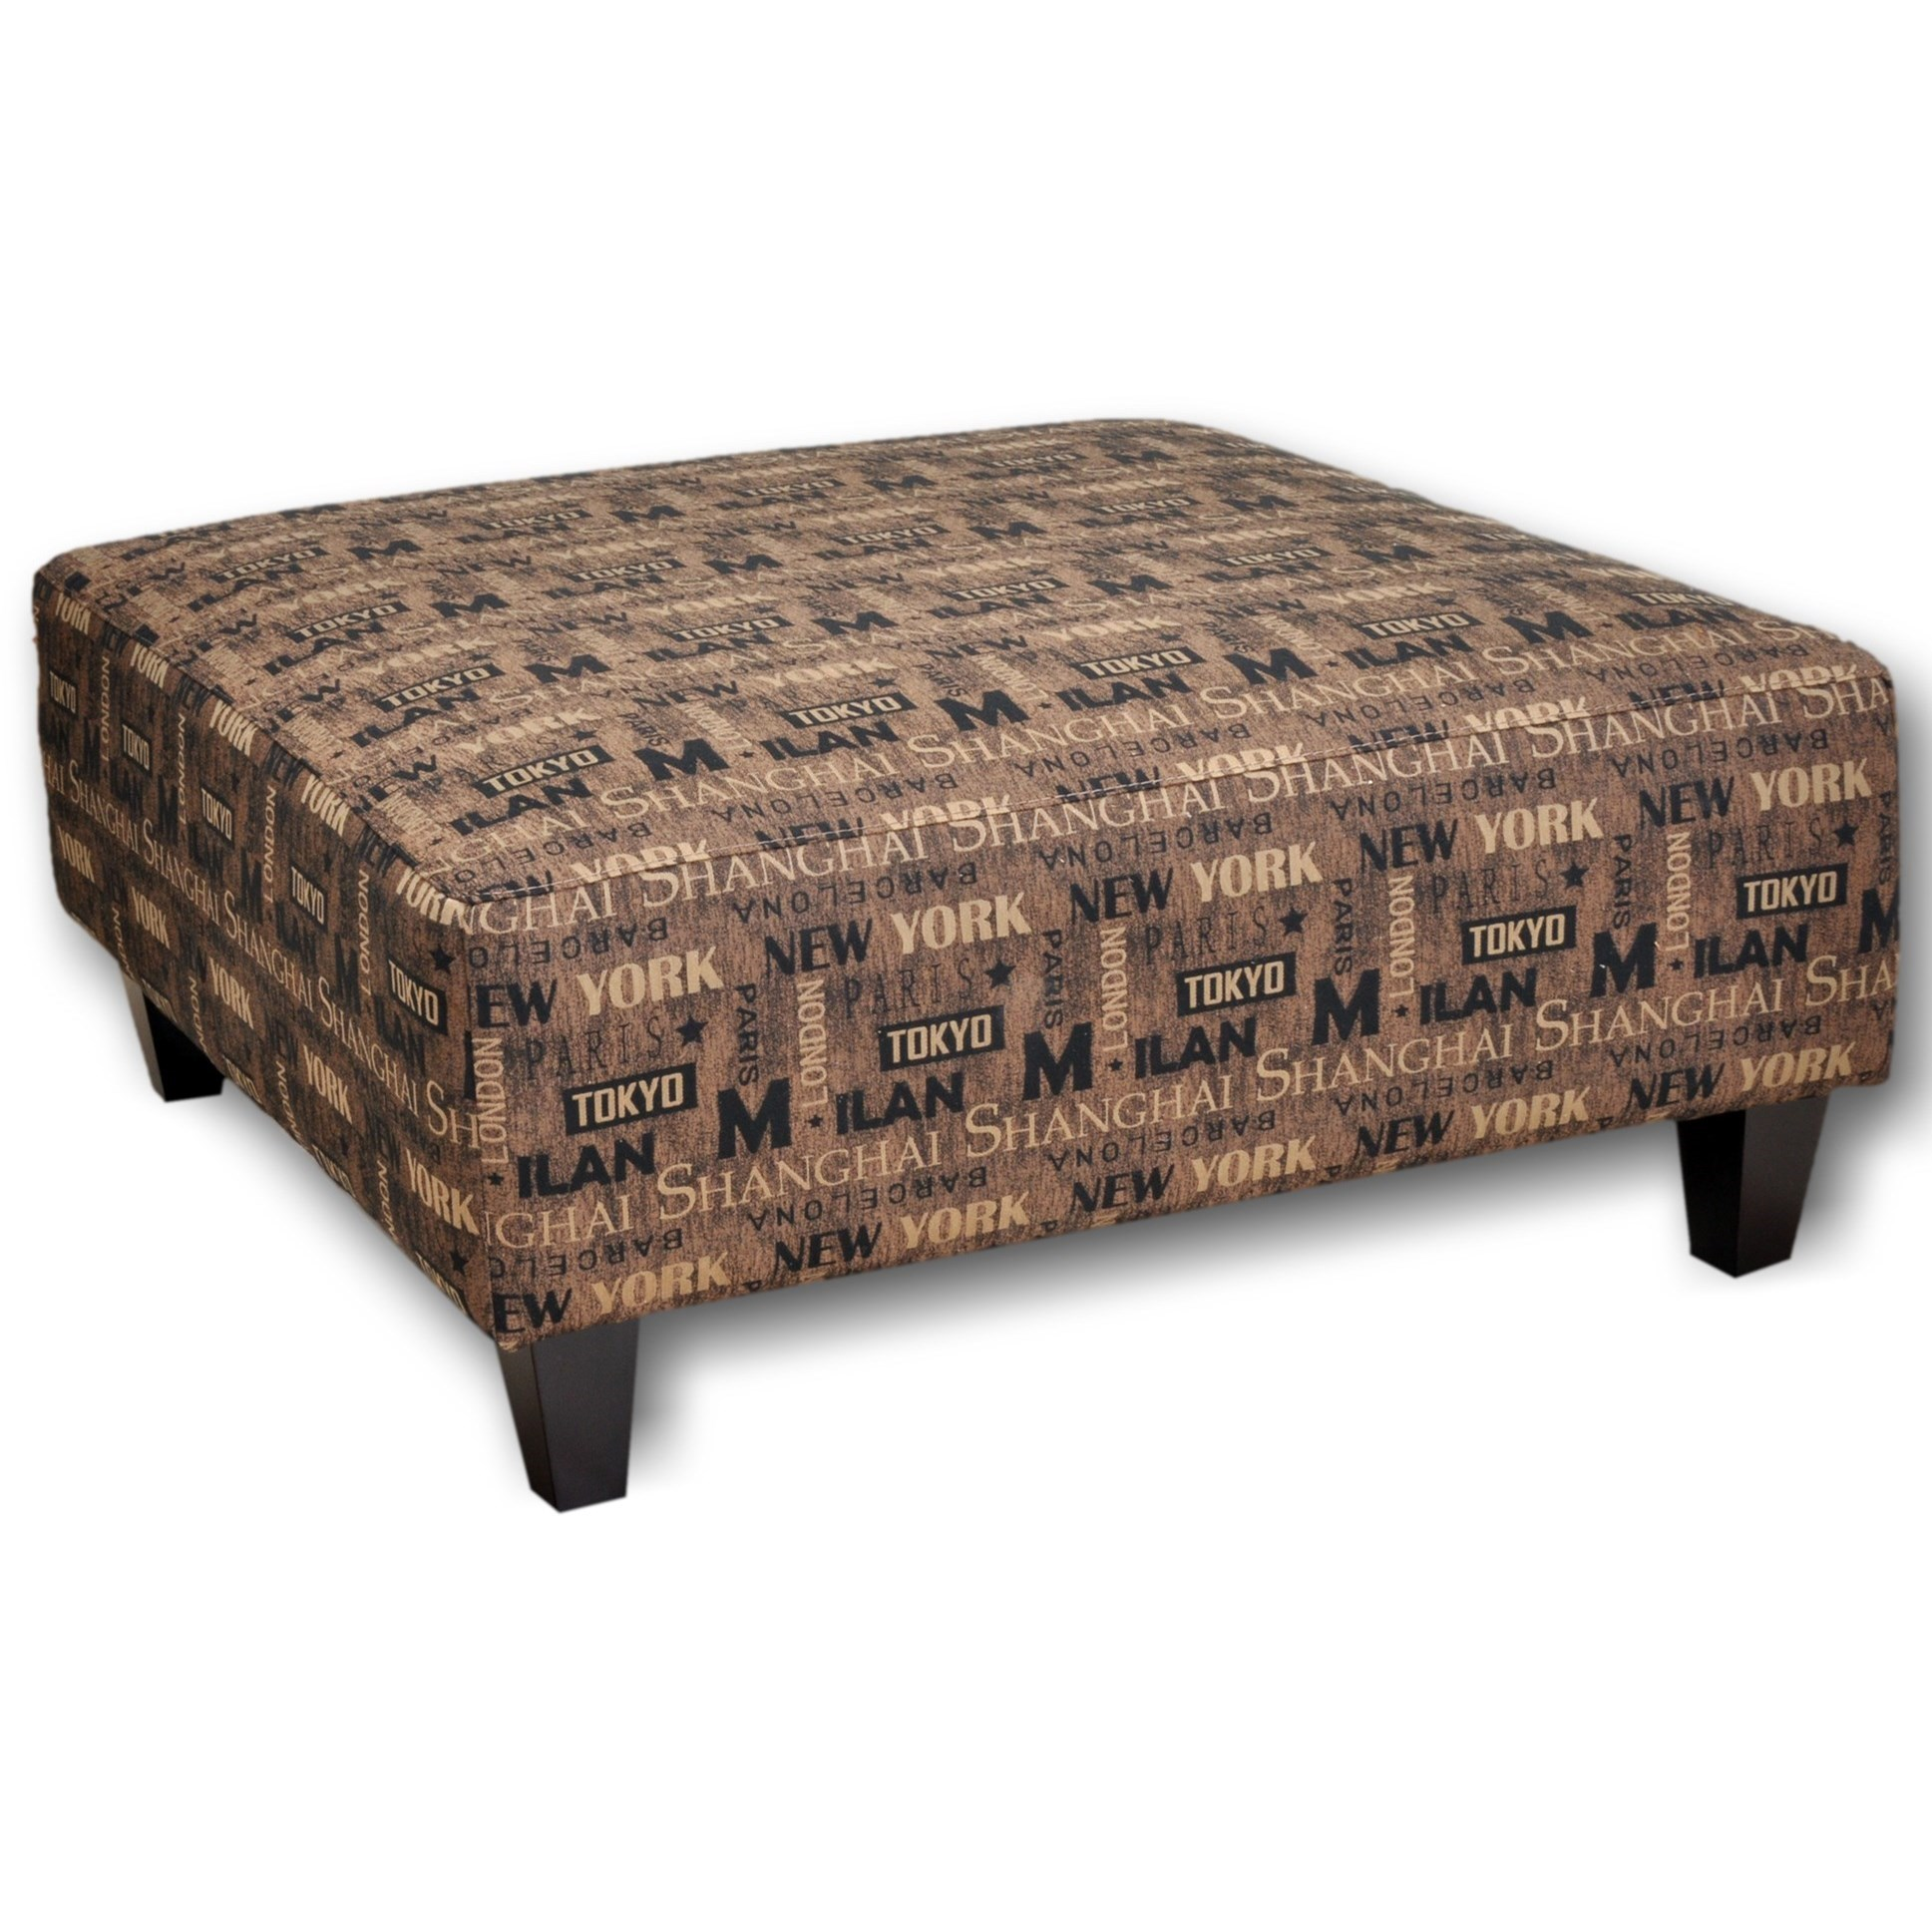 71418 Ottoman by Franklin at Turk Furniture